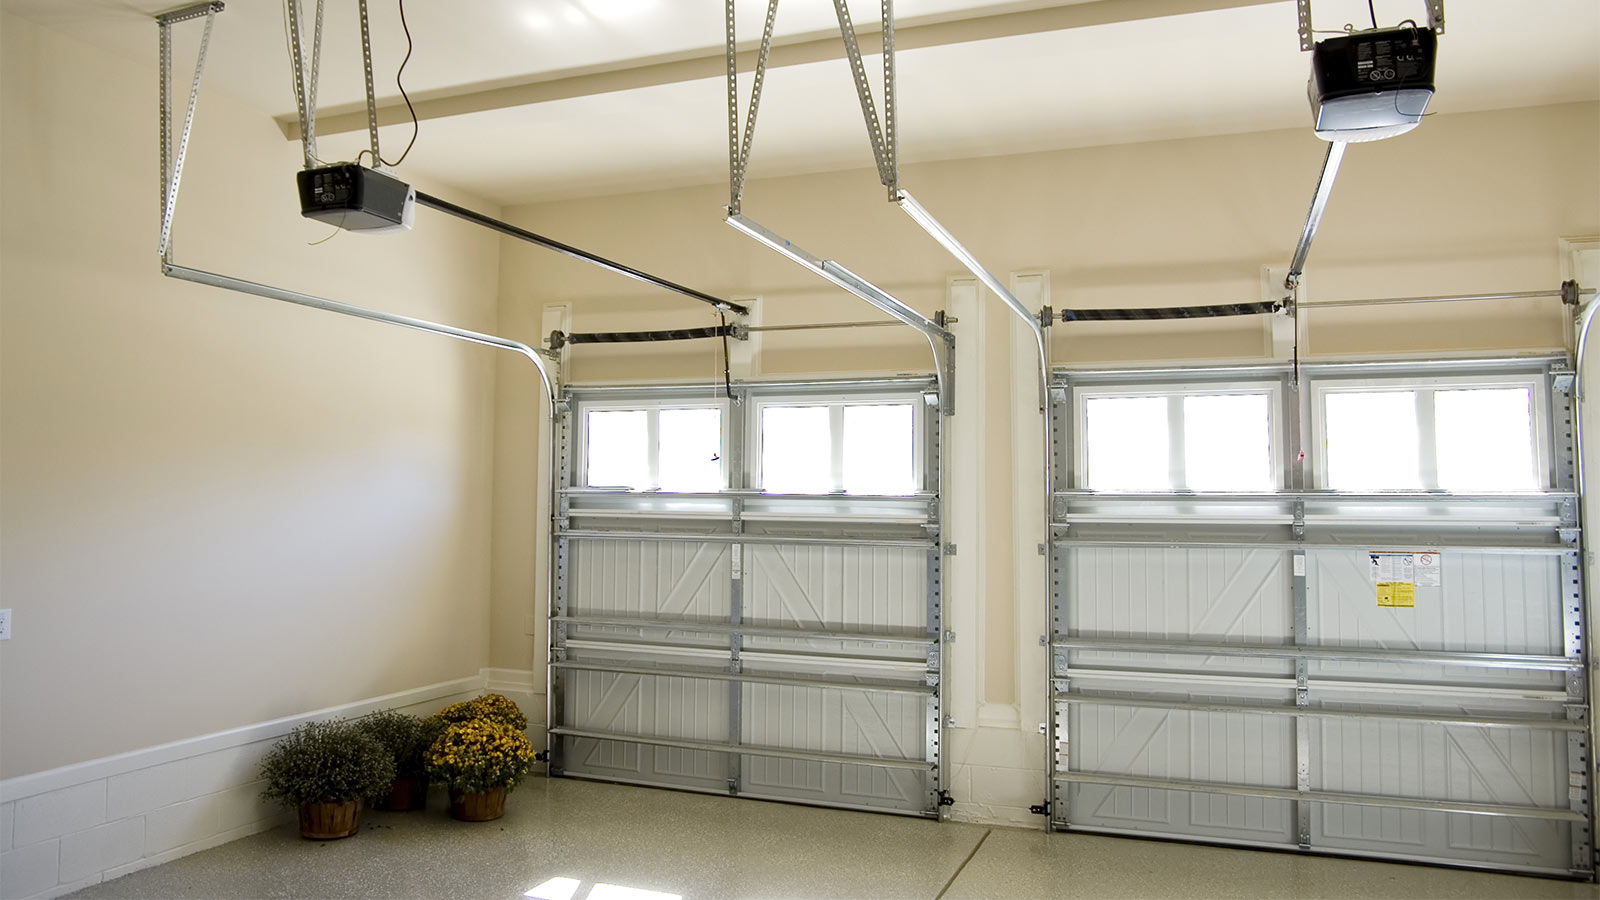 Sectional Garage Doors from Window Roller Shutters Cambridgeshire suppliers.